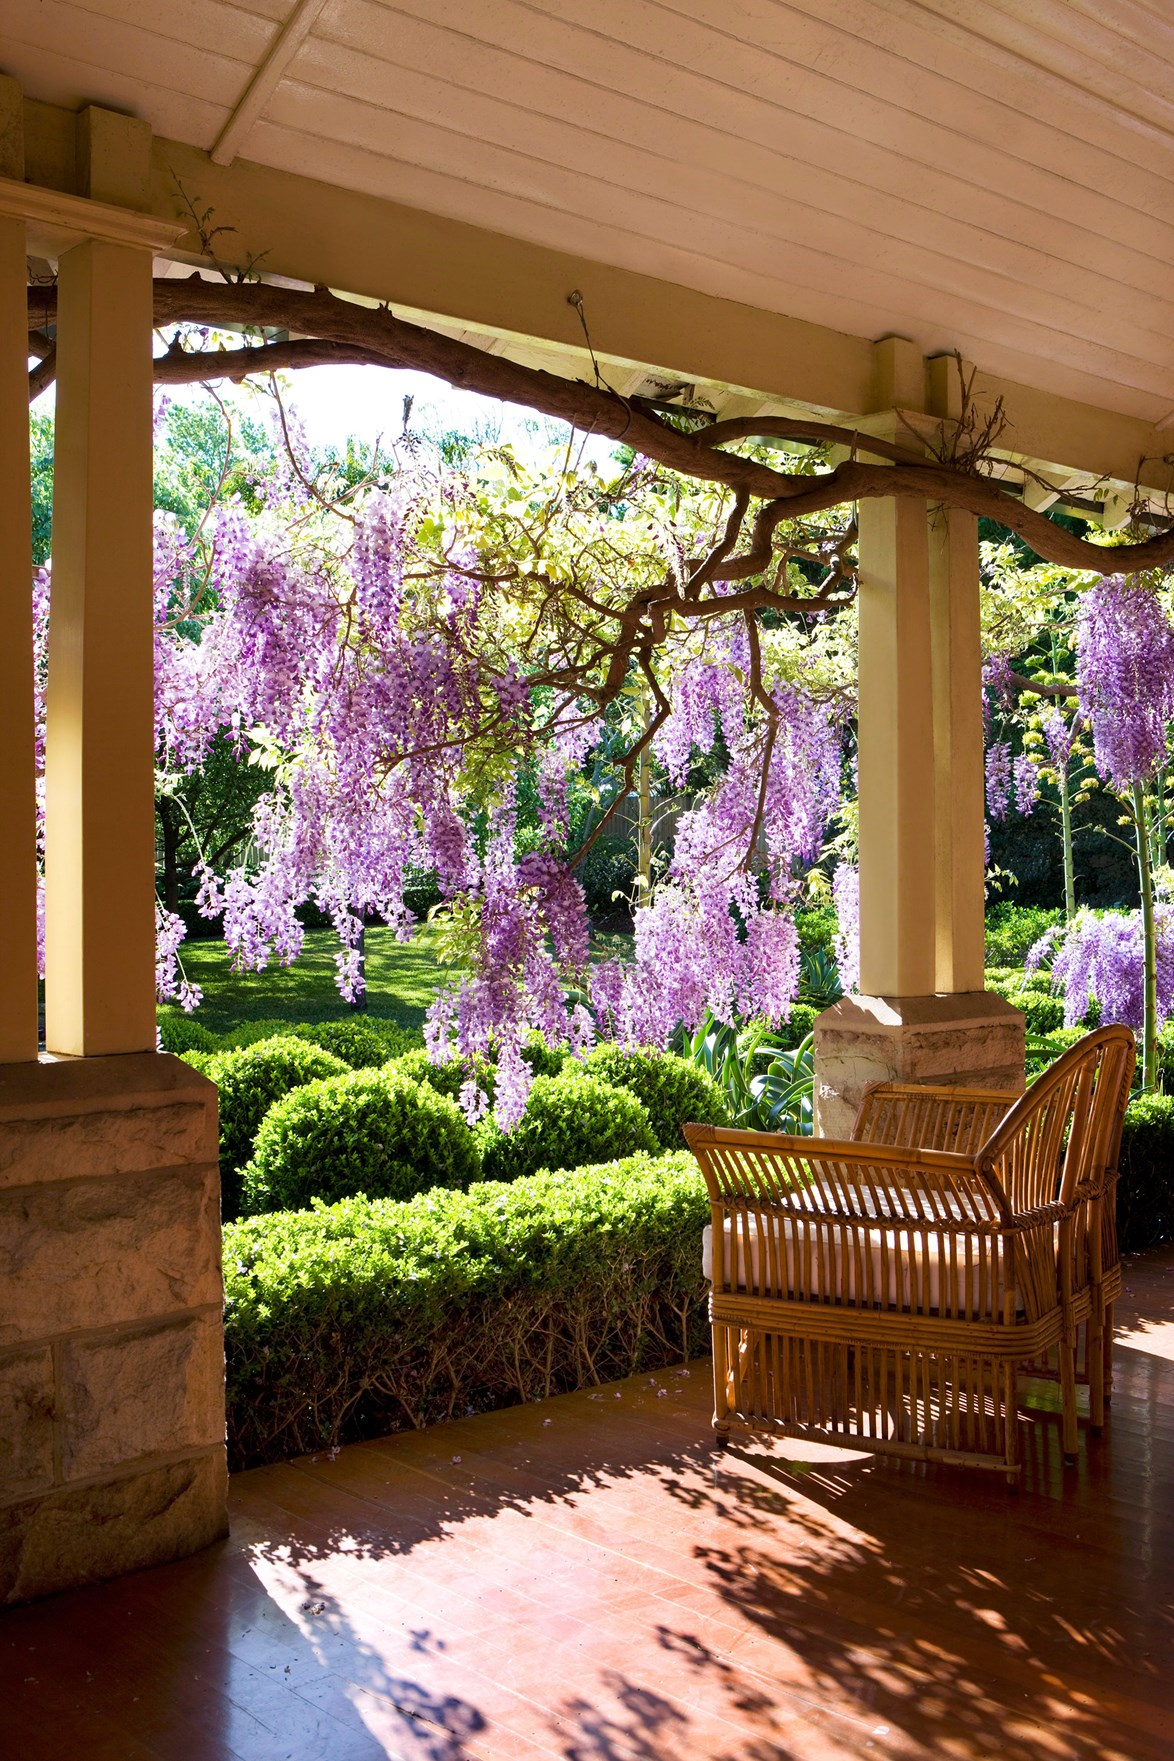 Once the wisteria flowers have finished, prune the plant back to the shape or size you want.